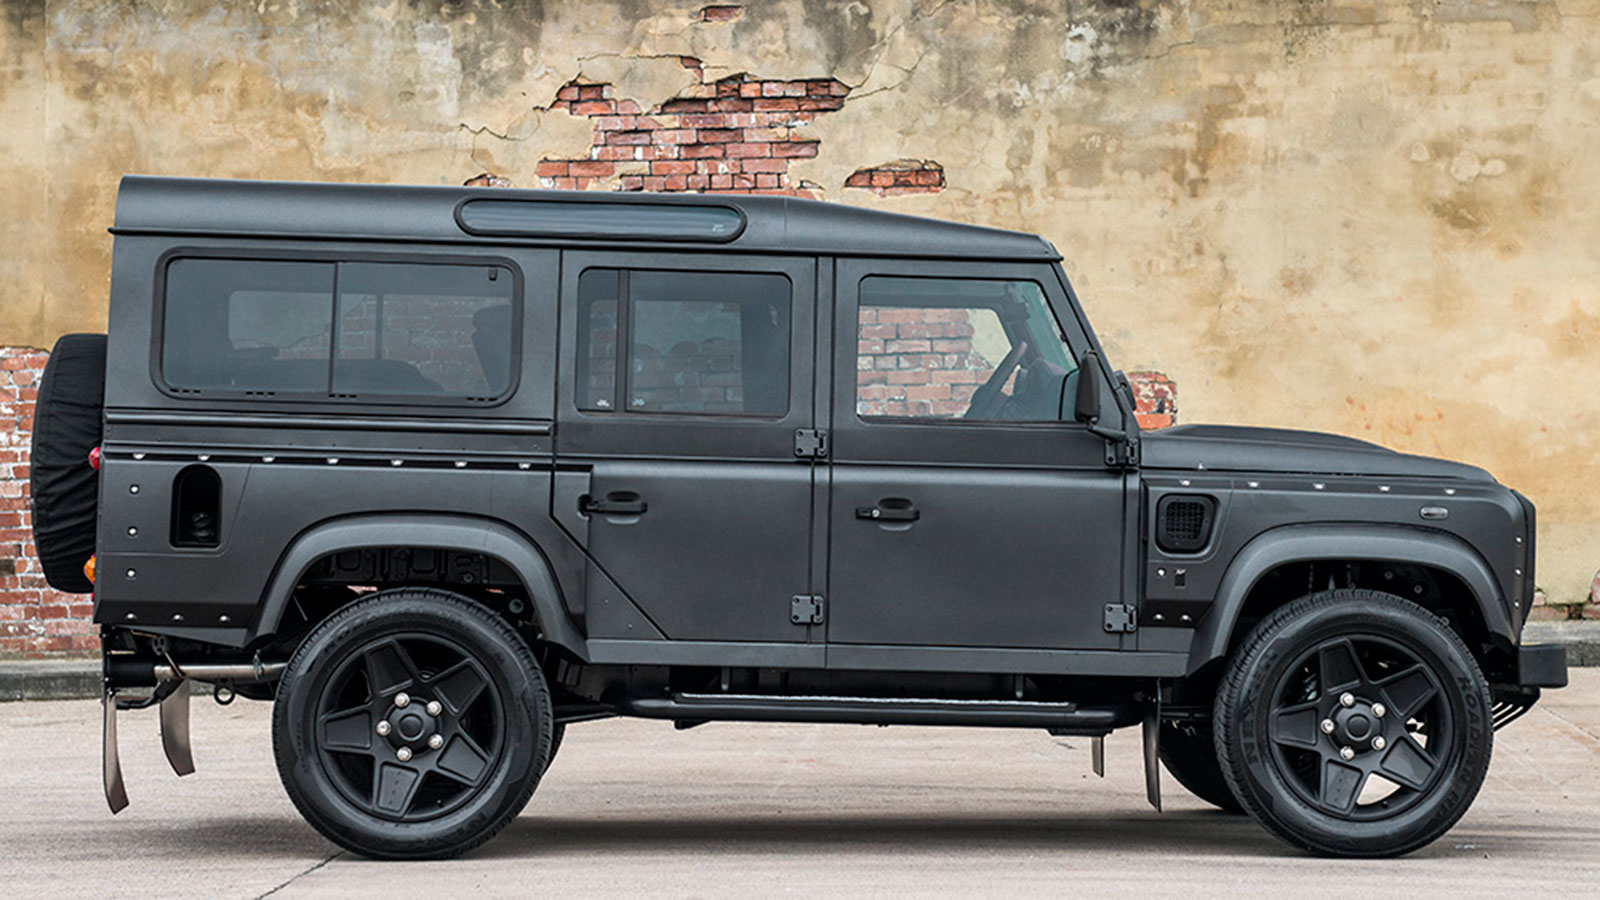 Defender-4x4-The-End-Edition-By-Project-Kahn-85568